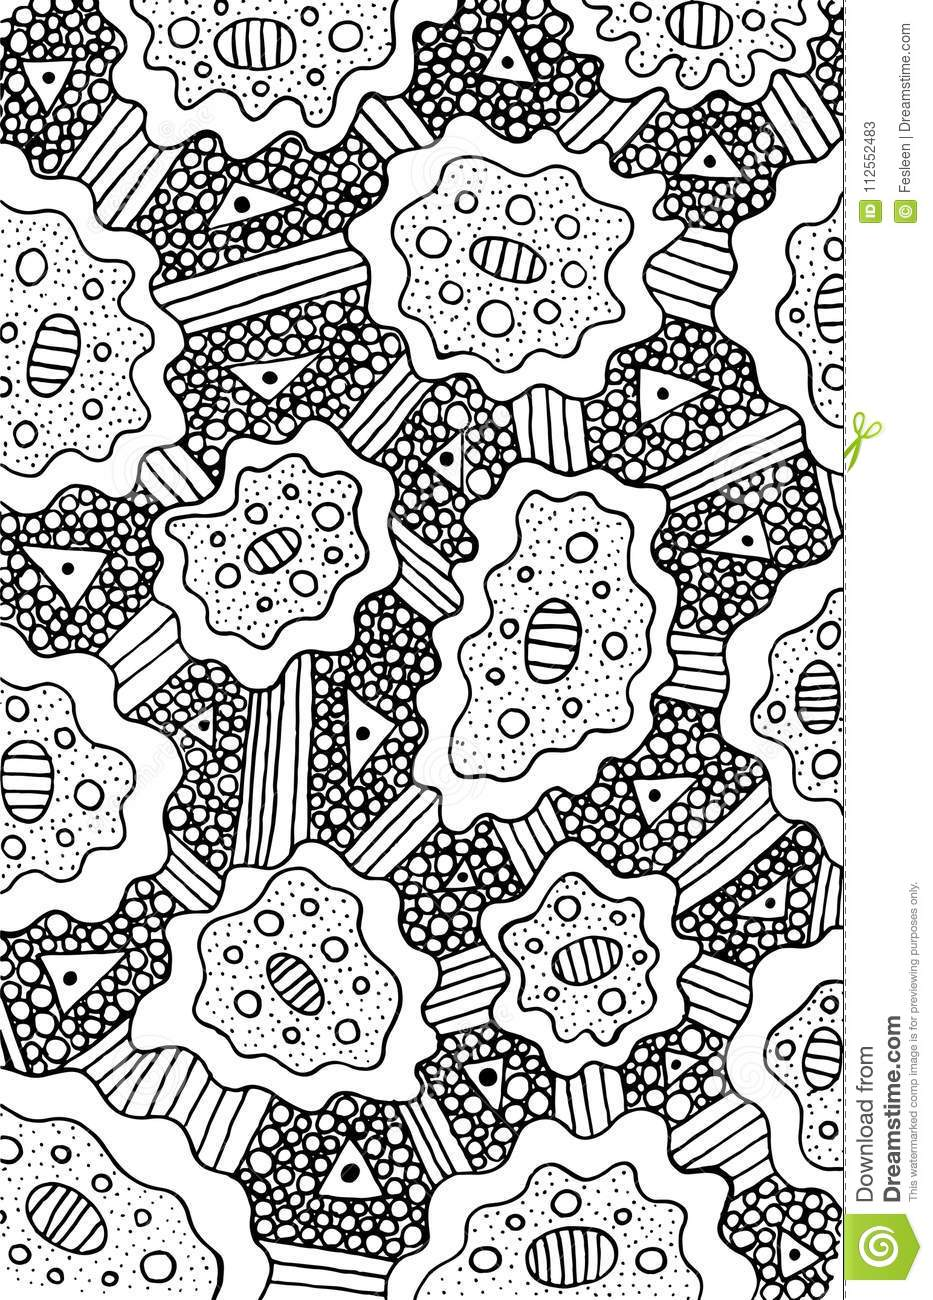 Doodle Coloring Page For Adults. Background Psychedelic ...